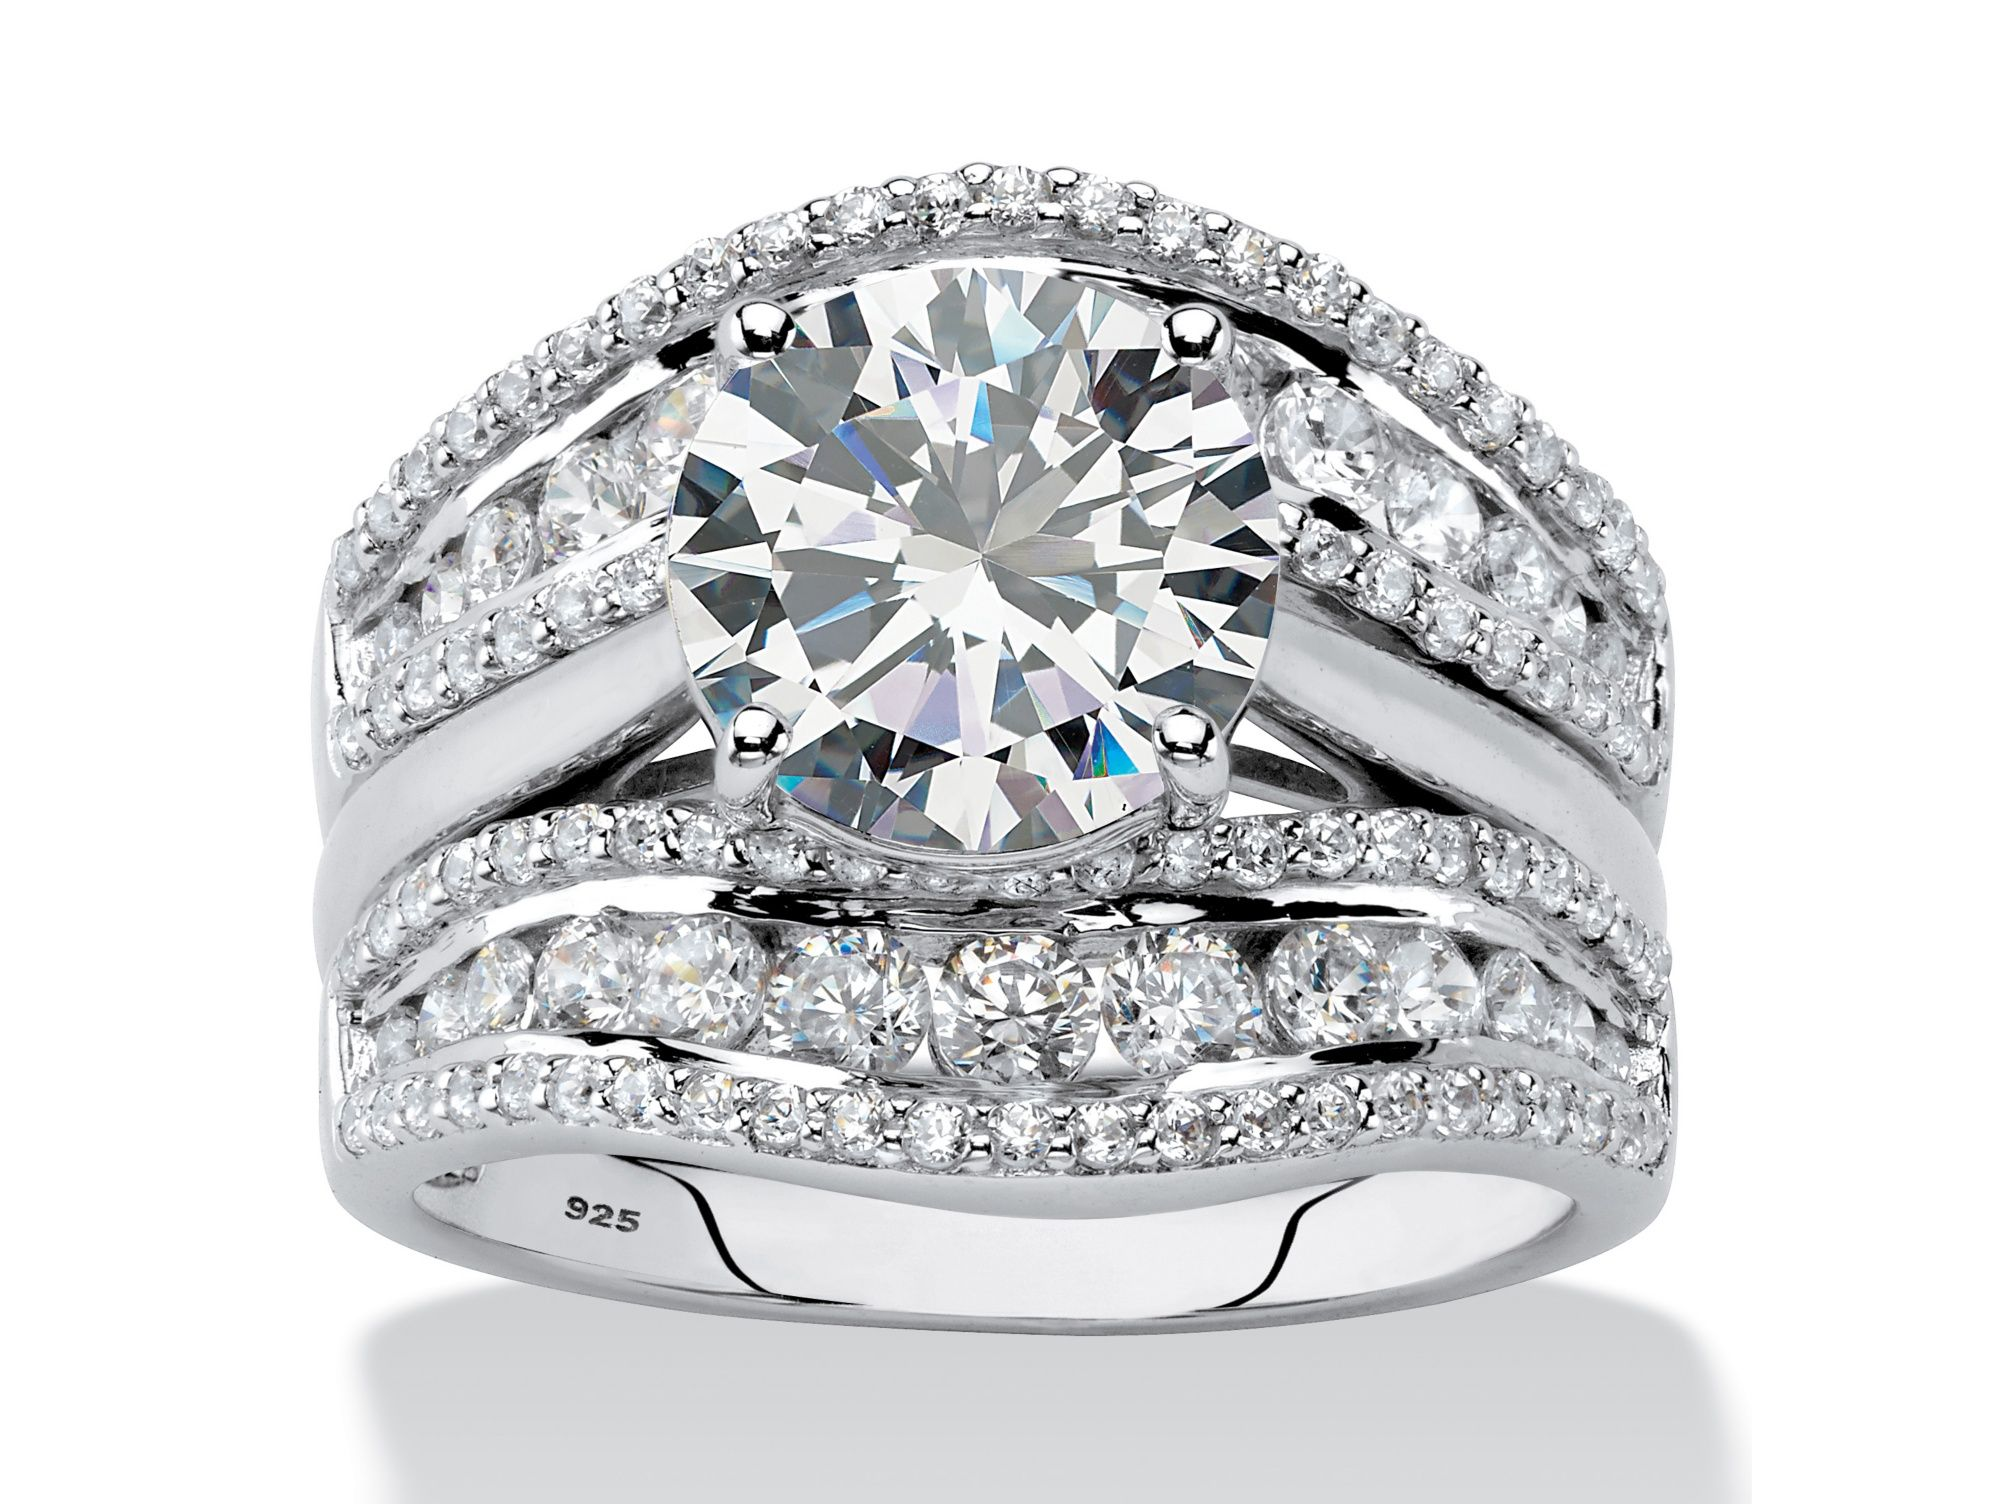 Jewelry Wedding ring sets, Wedding rings, Ring sets